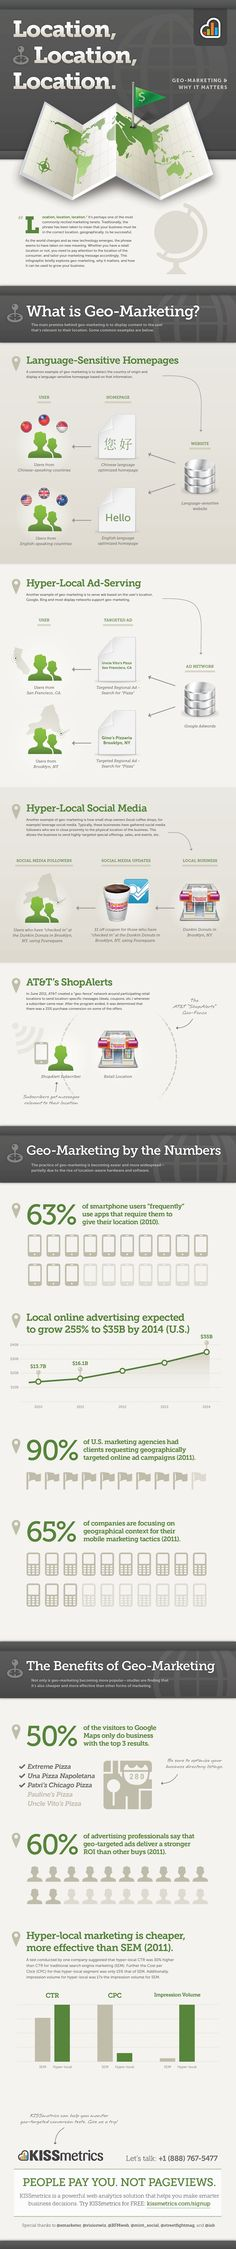 Location, Location, Location: Geo-Marketing & Why It Matters - Infographic